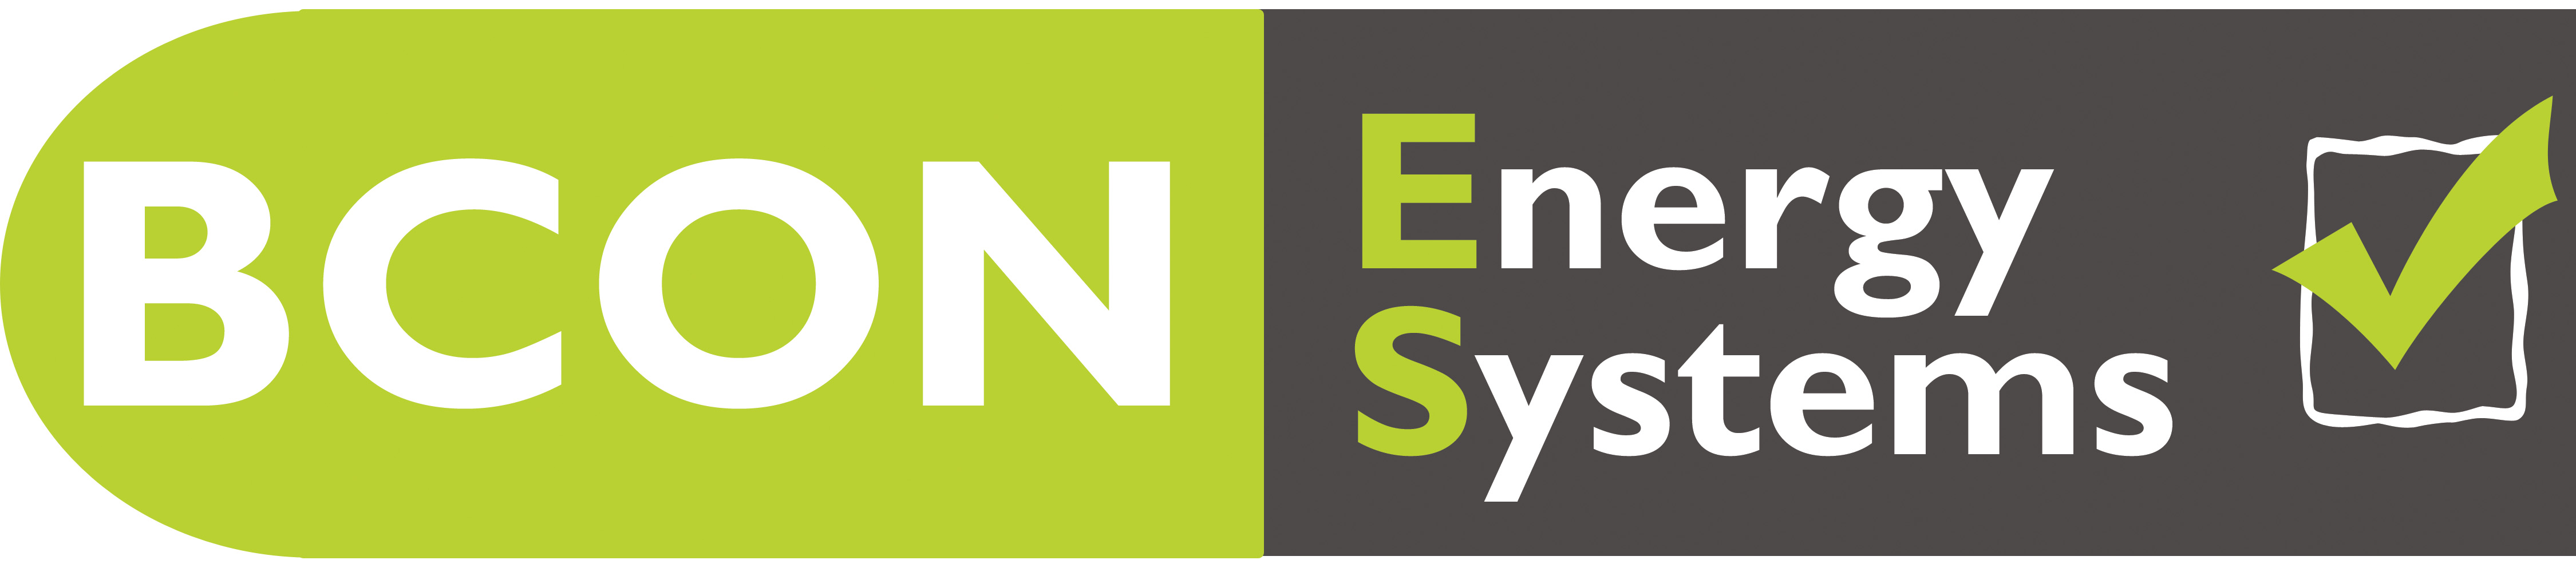 BCON Energy Systems